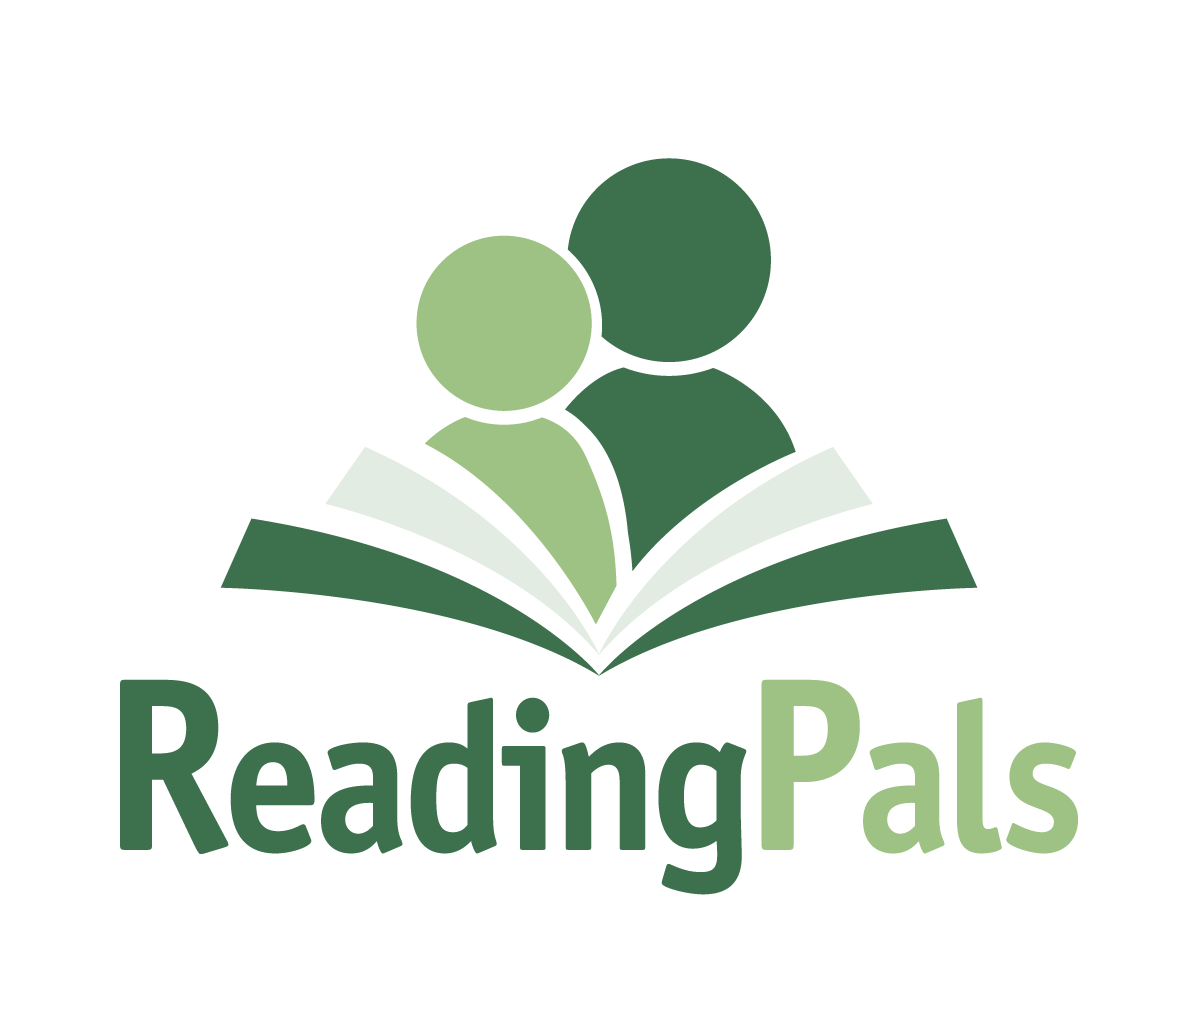 United Way of Broward County's ReadingPals